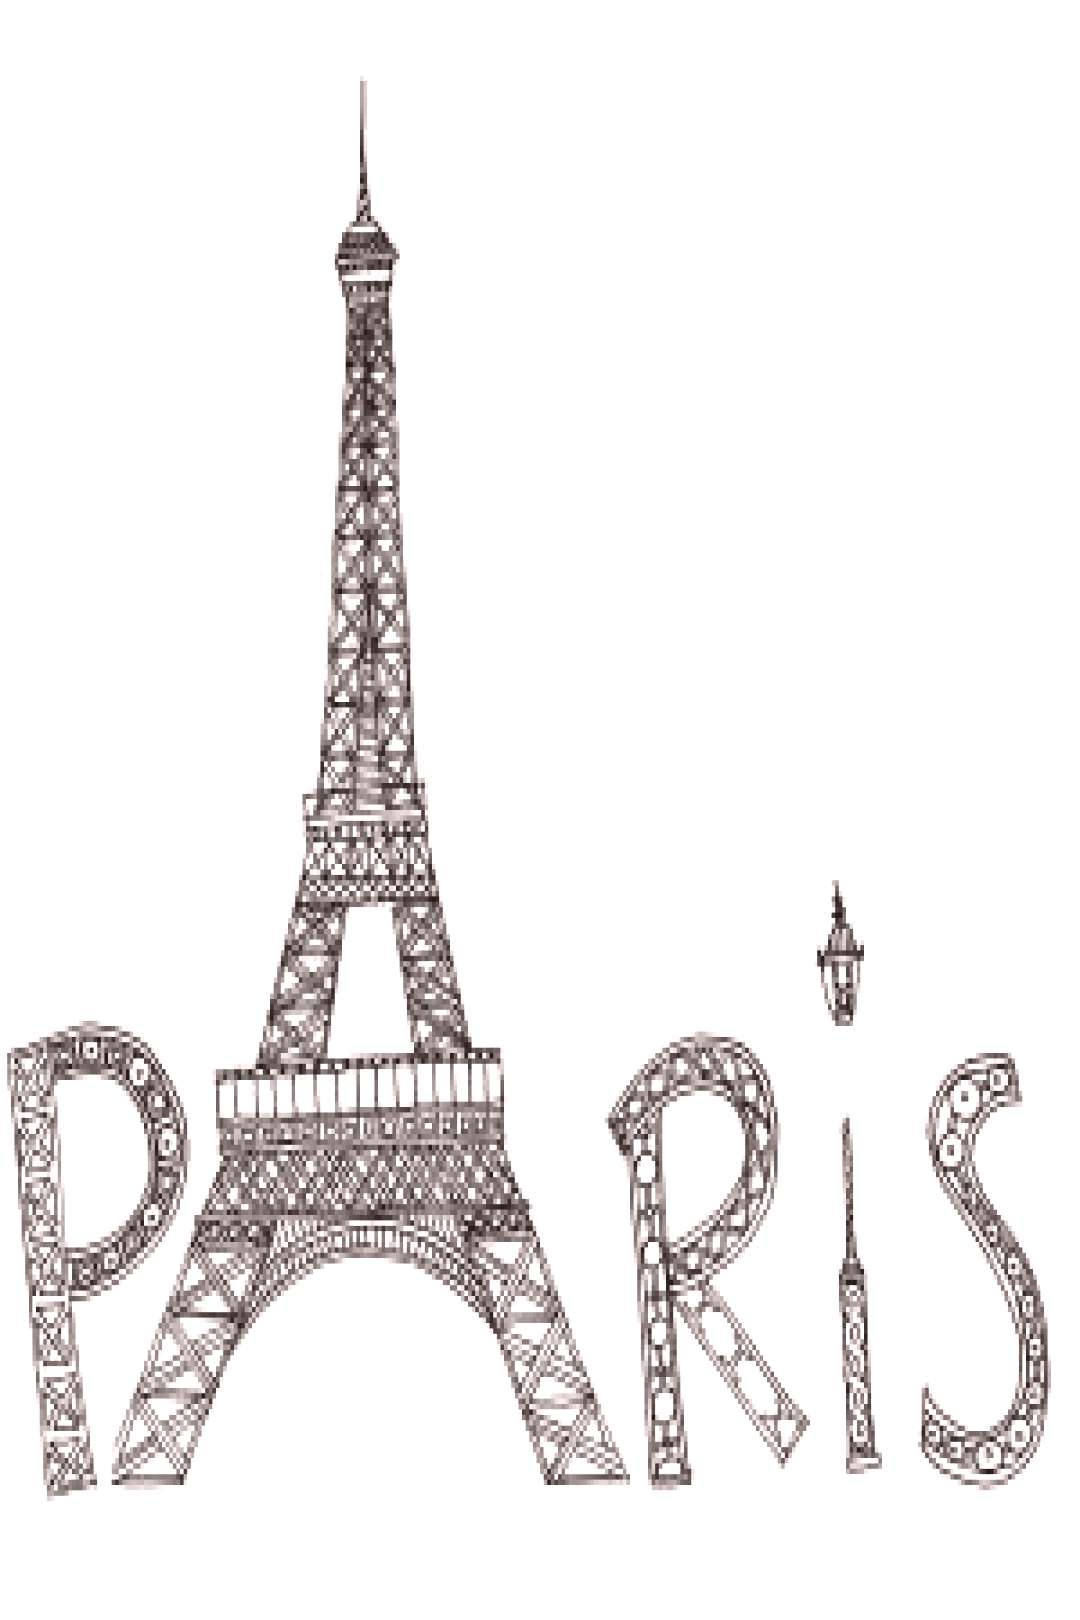 Eiffel Tower _ Art therapy _ Coloring book page _ Free printable doodle to color for grown ups quotFro